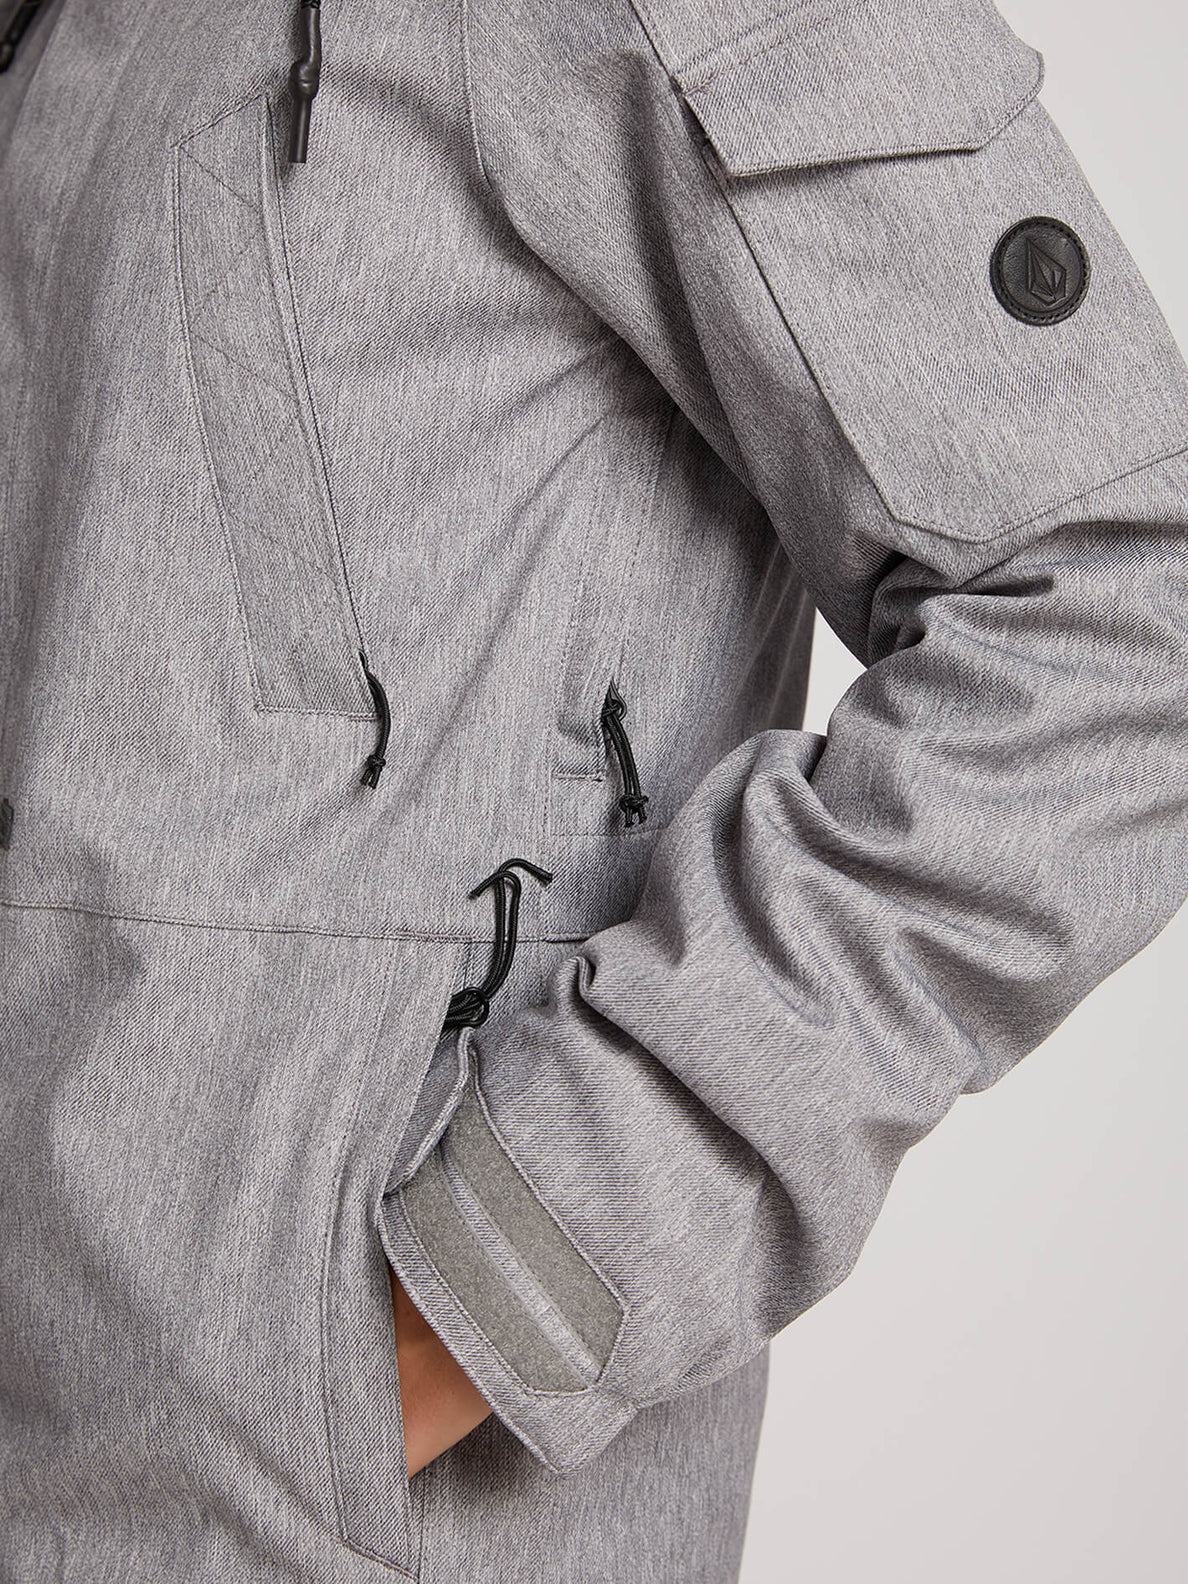 Shrine Insulated Jacket In Heather Grey, Fourth Alternate View